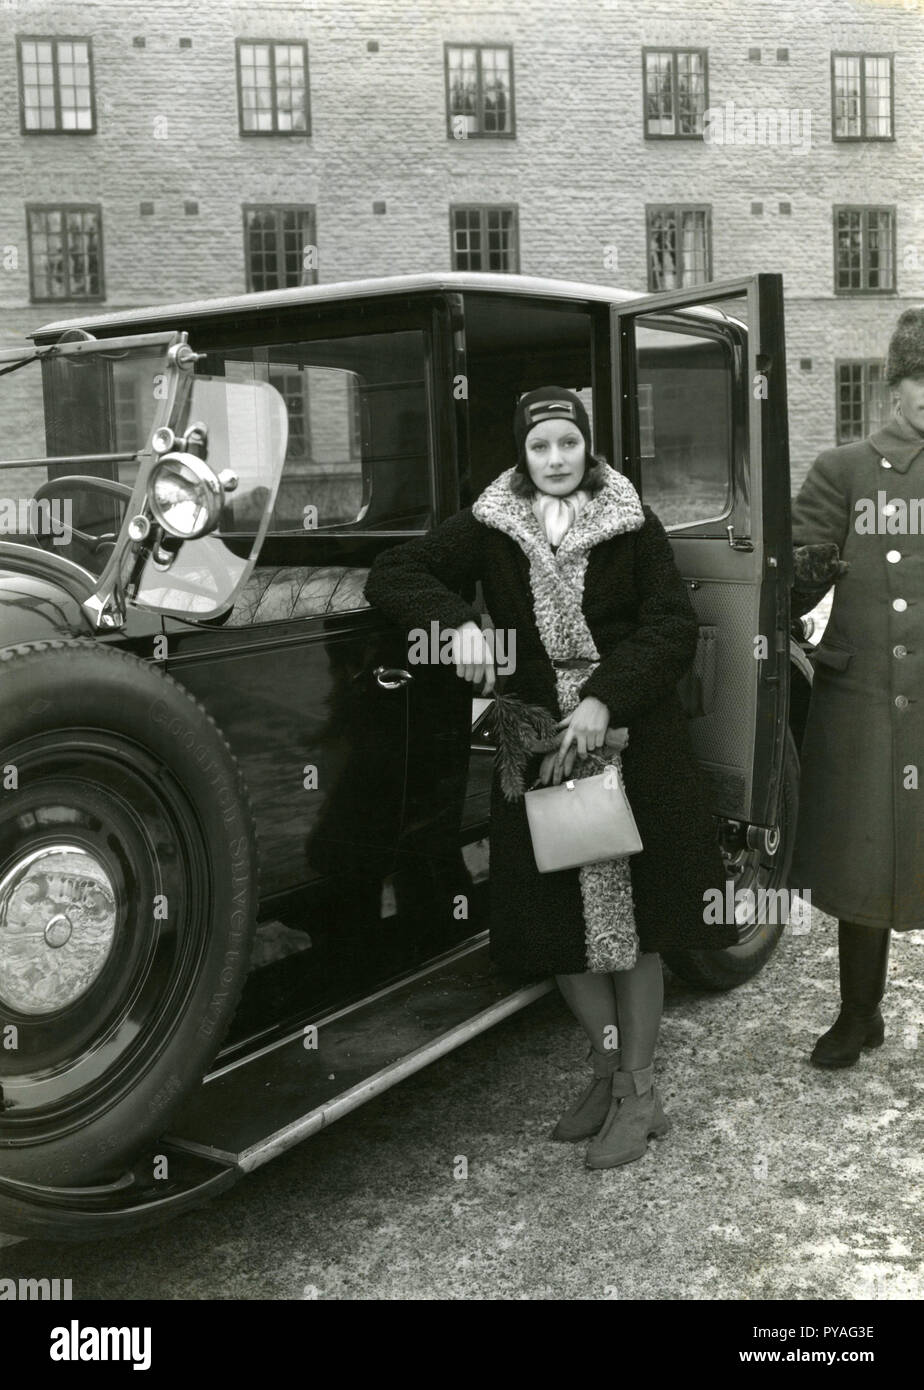 Swedish actress Greta Garbo. 1905-1990. Swedish actress with her glory days during the 1920s and 1930s. She retired from the screen at the age of 35 after acting in 28 films. Pictured here when on vacation in Stockholm 1935 and poses for the photographer half way in a taxi cab. - Stock Image